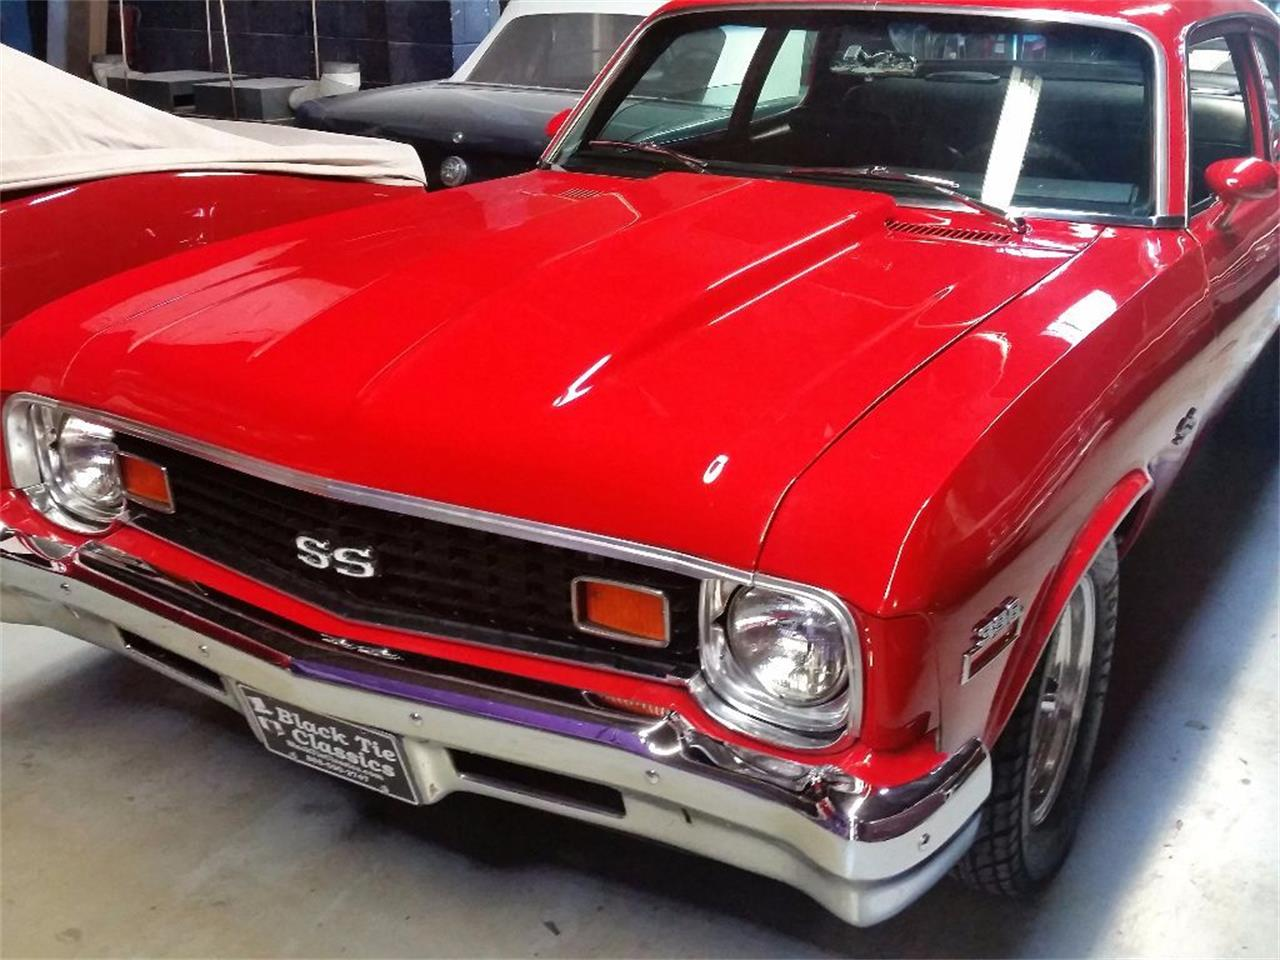 Large Picture of '73 Chevrolet Nova Offered by Black Tie Classics - OCOA